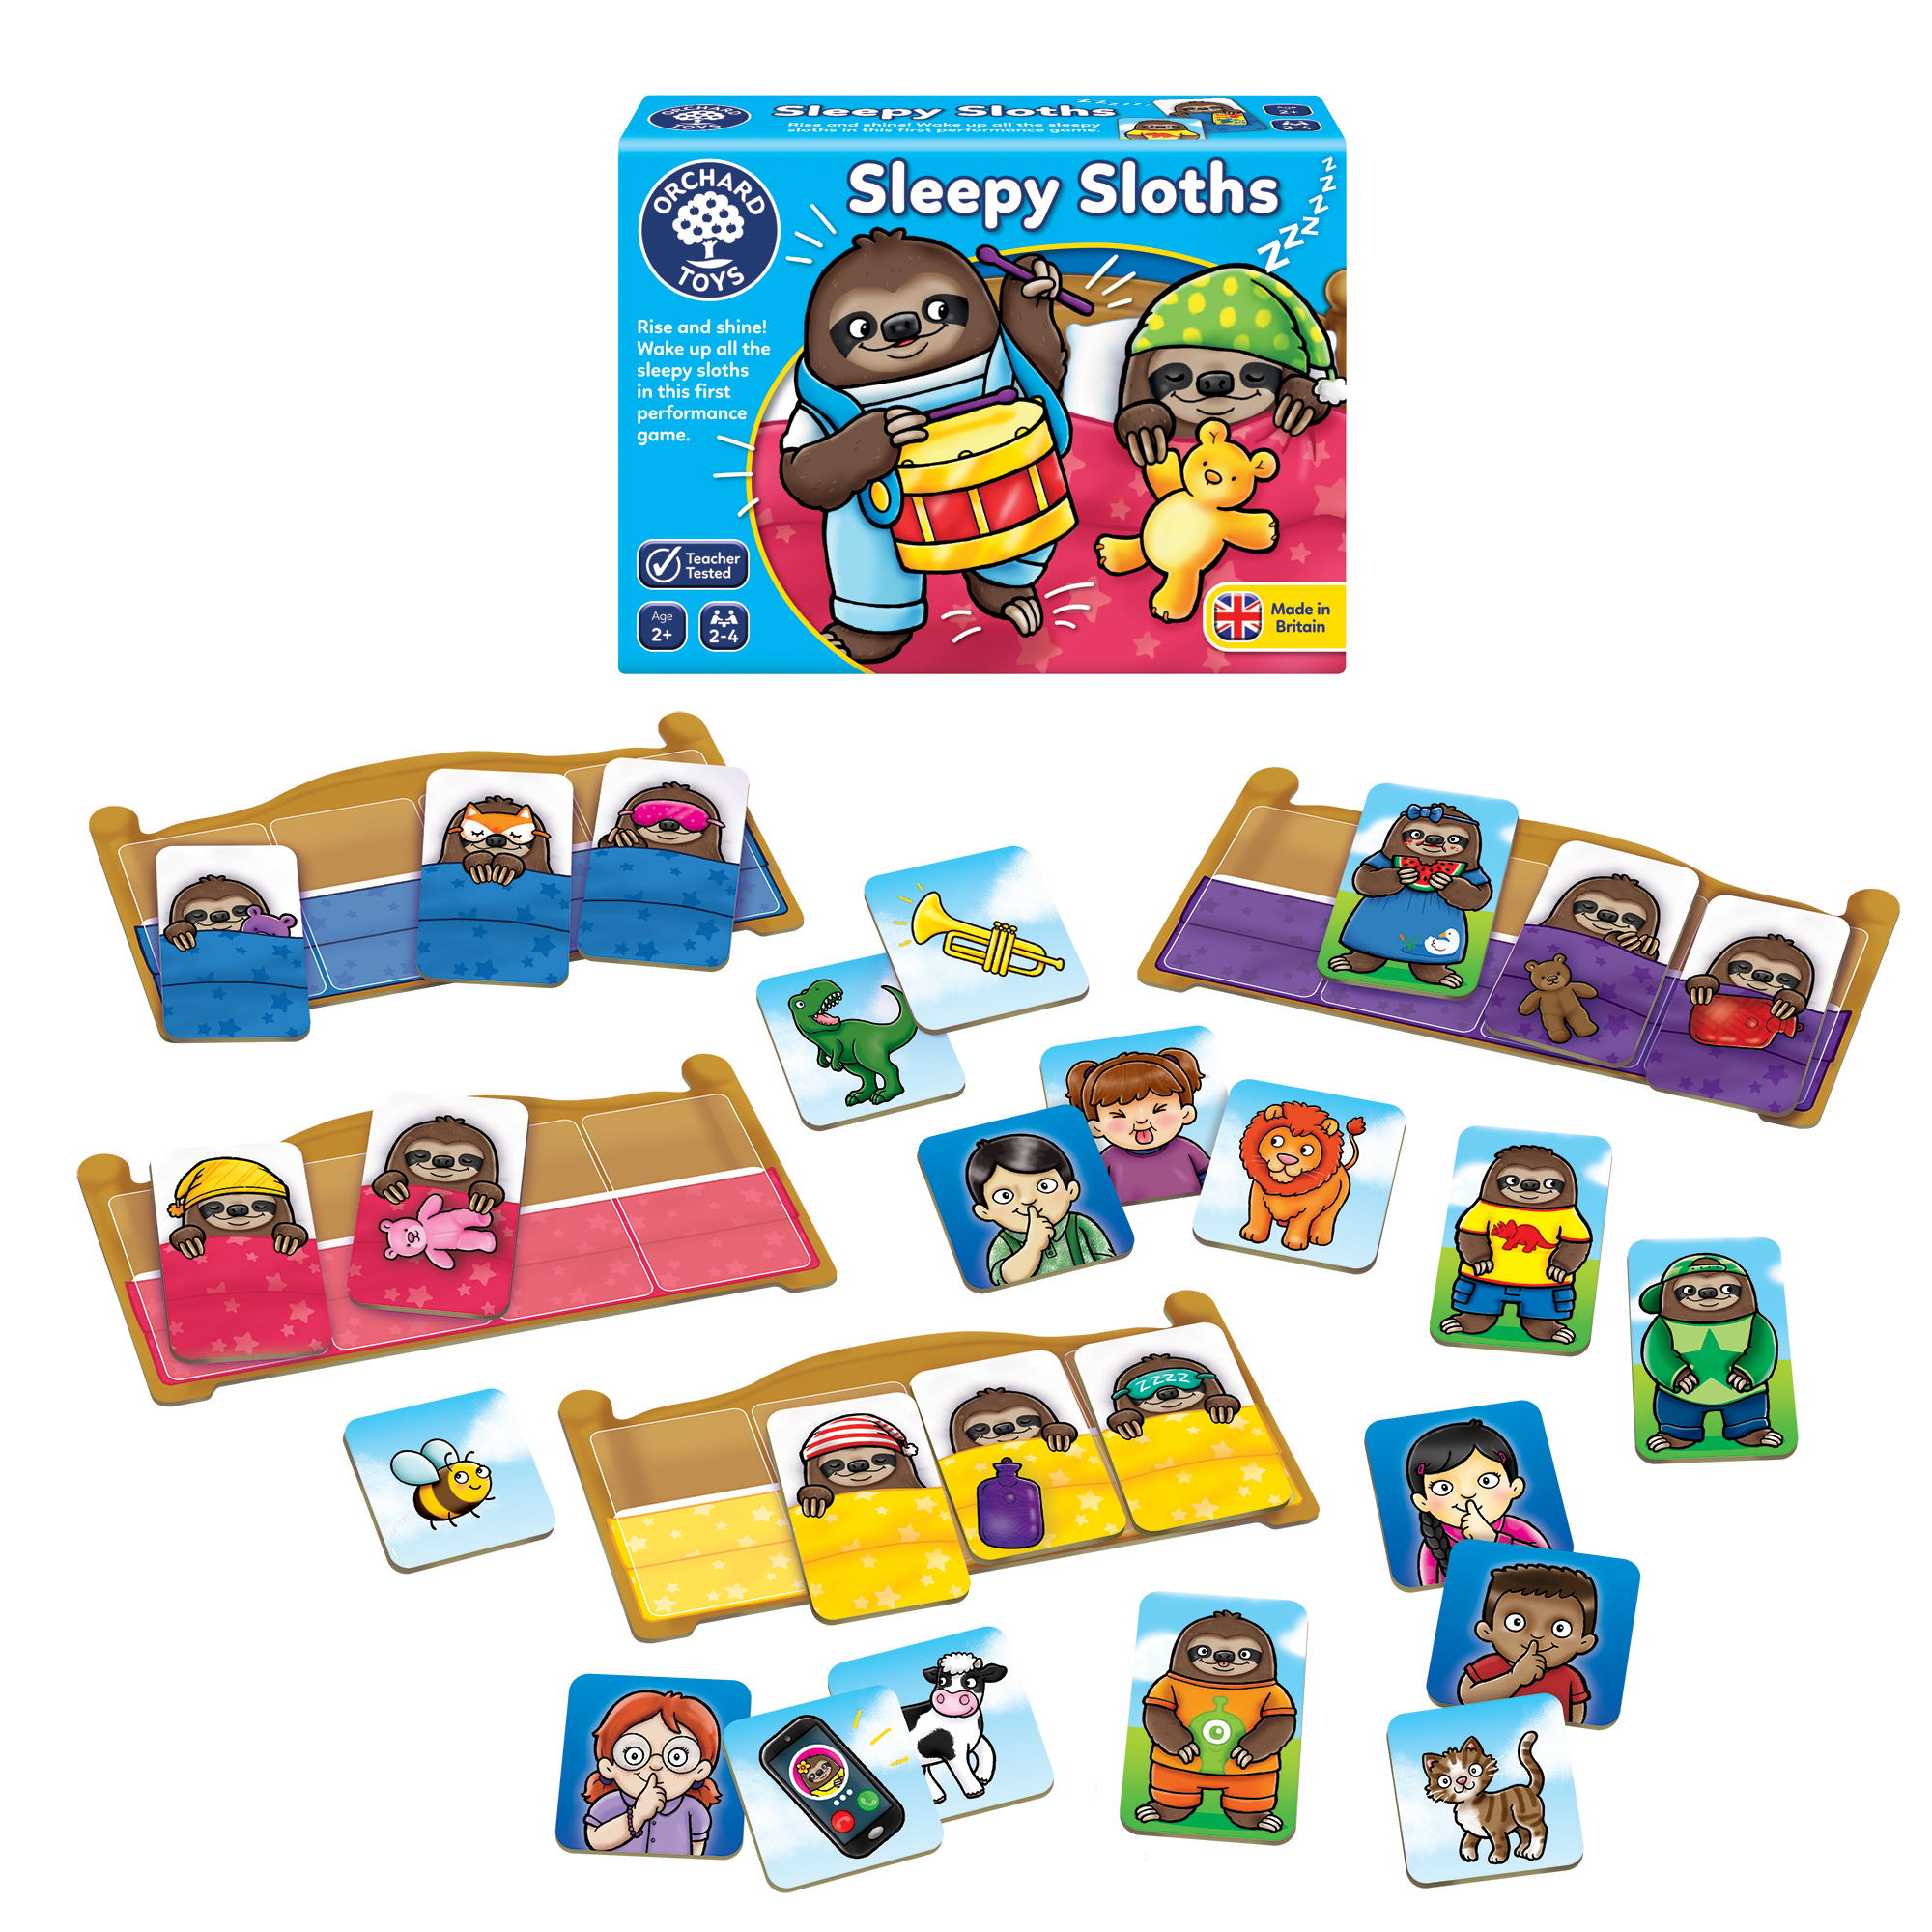 Orchard Toys: Sleepy Sloths Game, worth £8.30